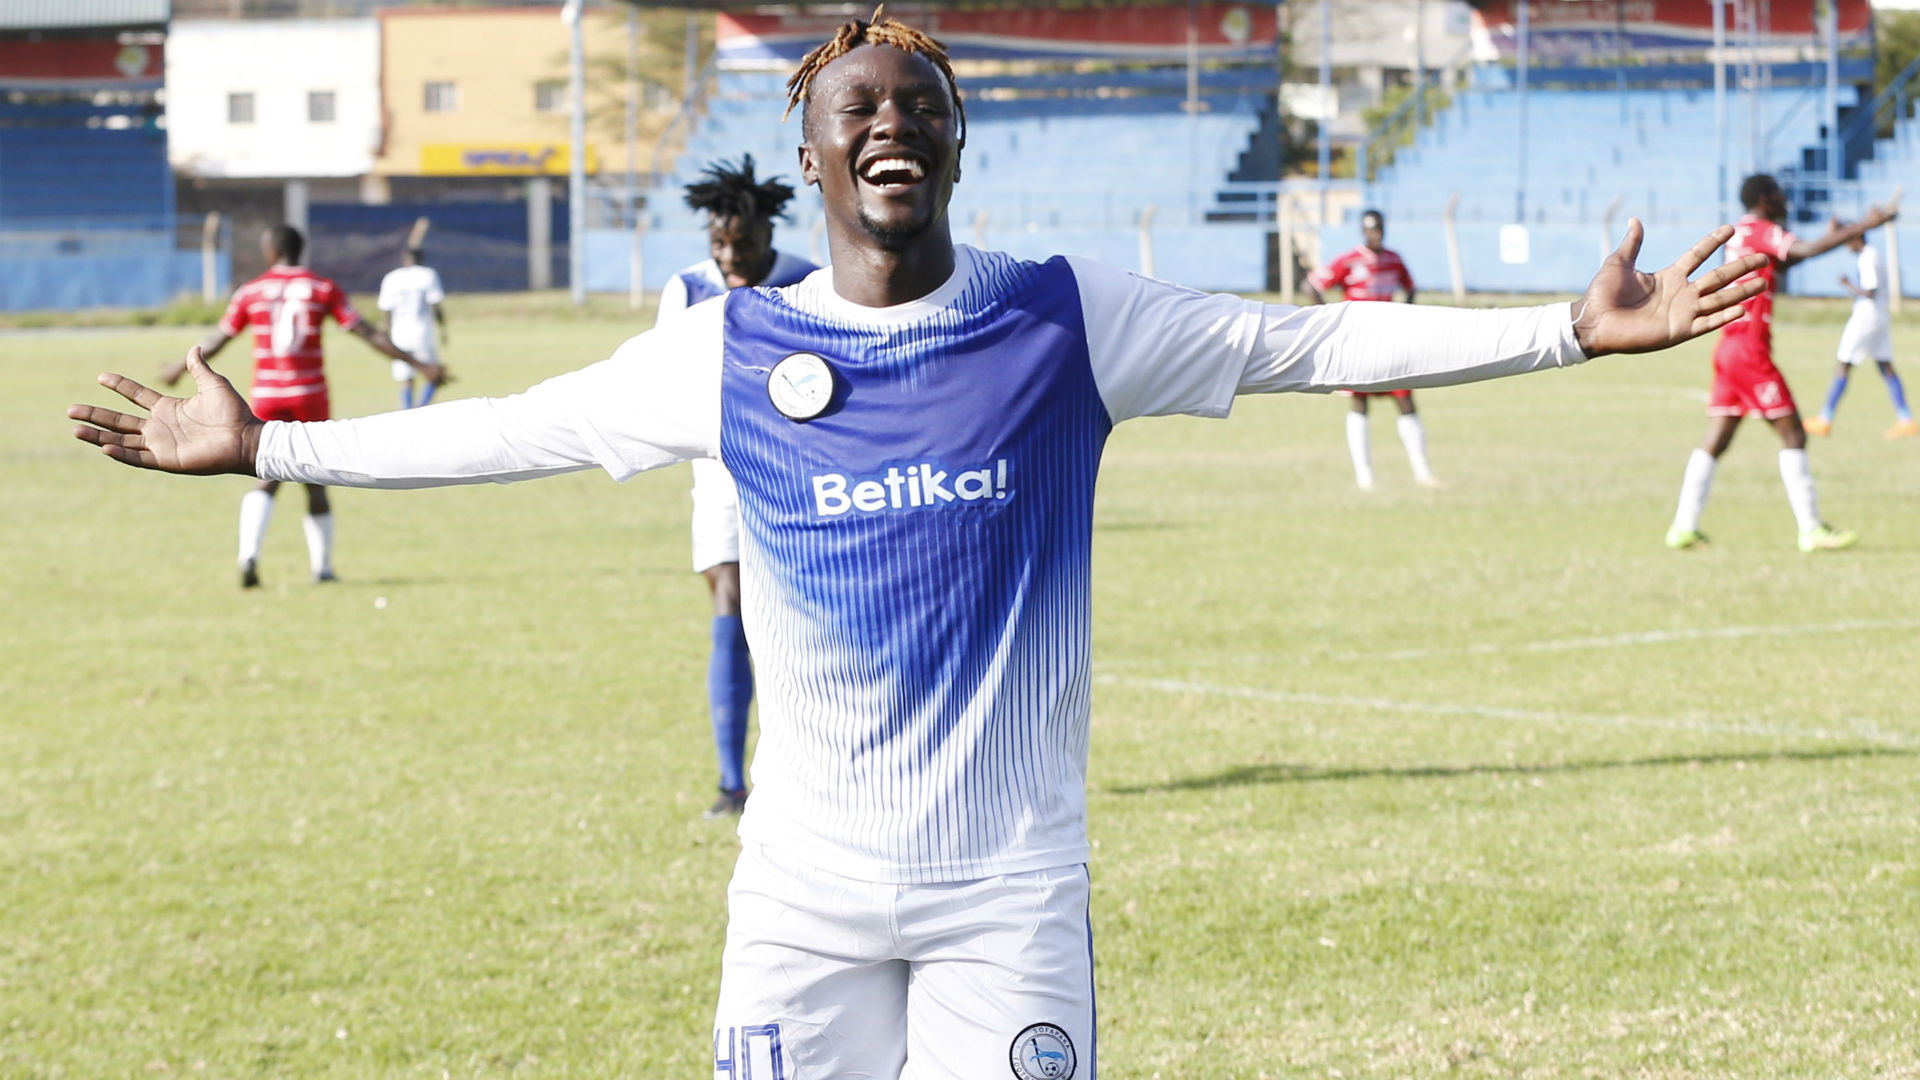 Avire: Kenya forward signs for Aswan SC in Egypt despite Sofapaka stand